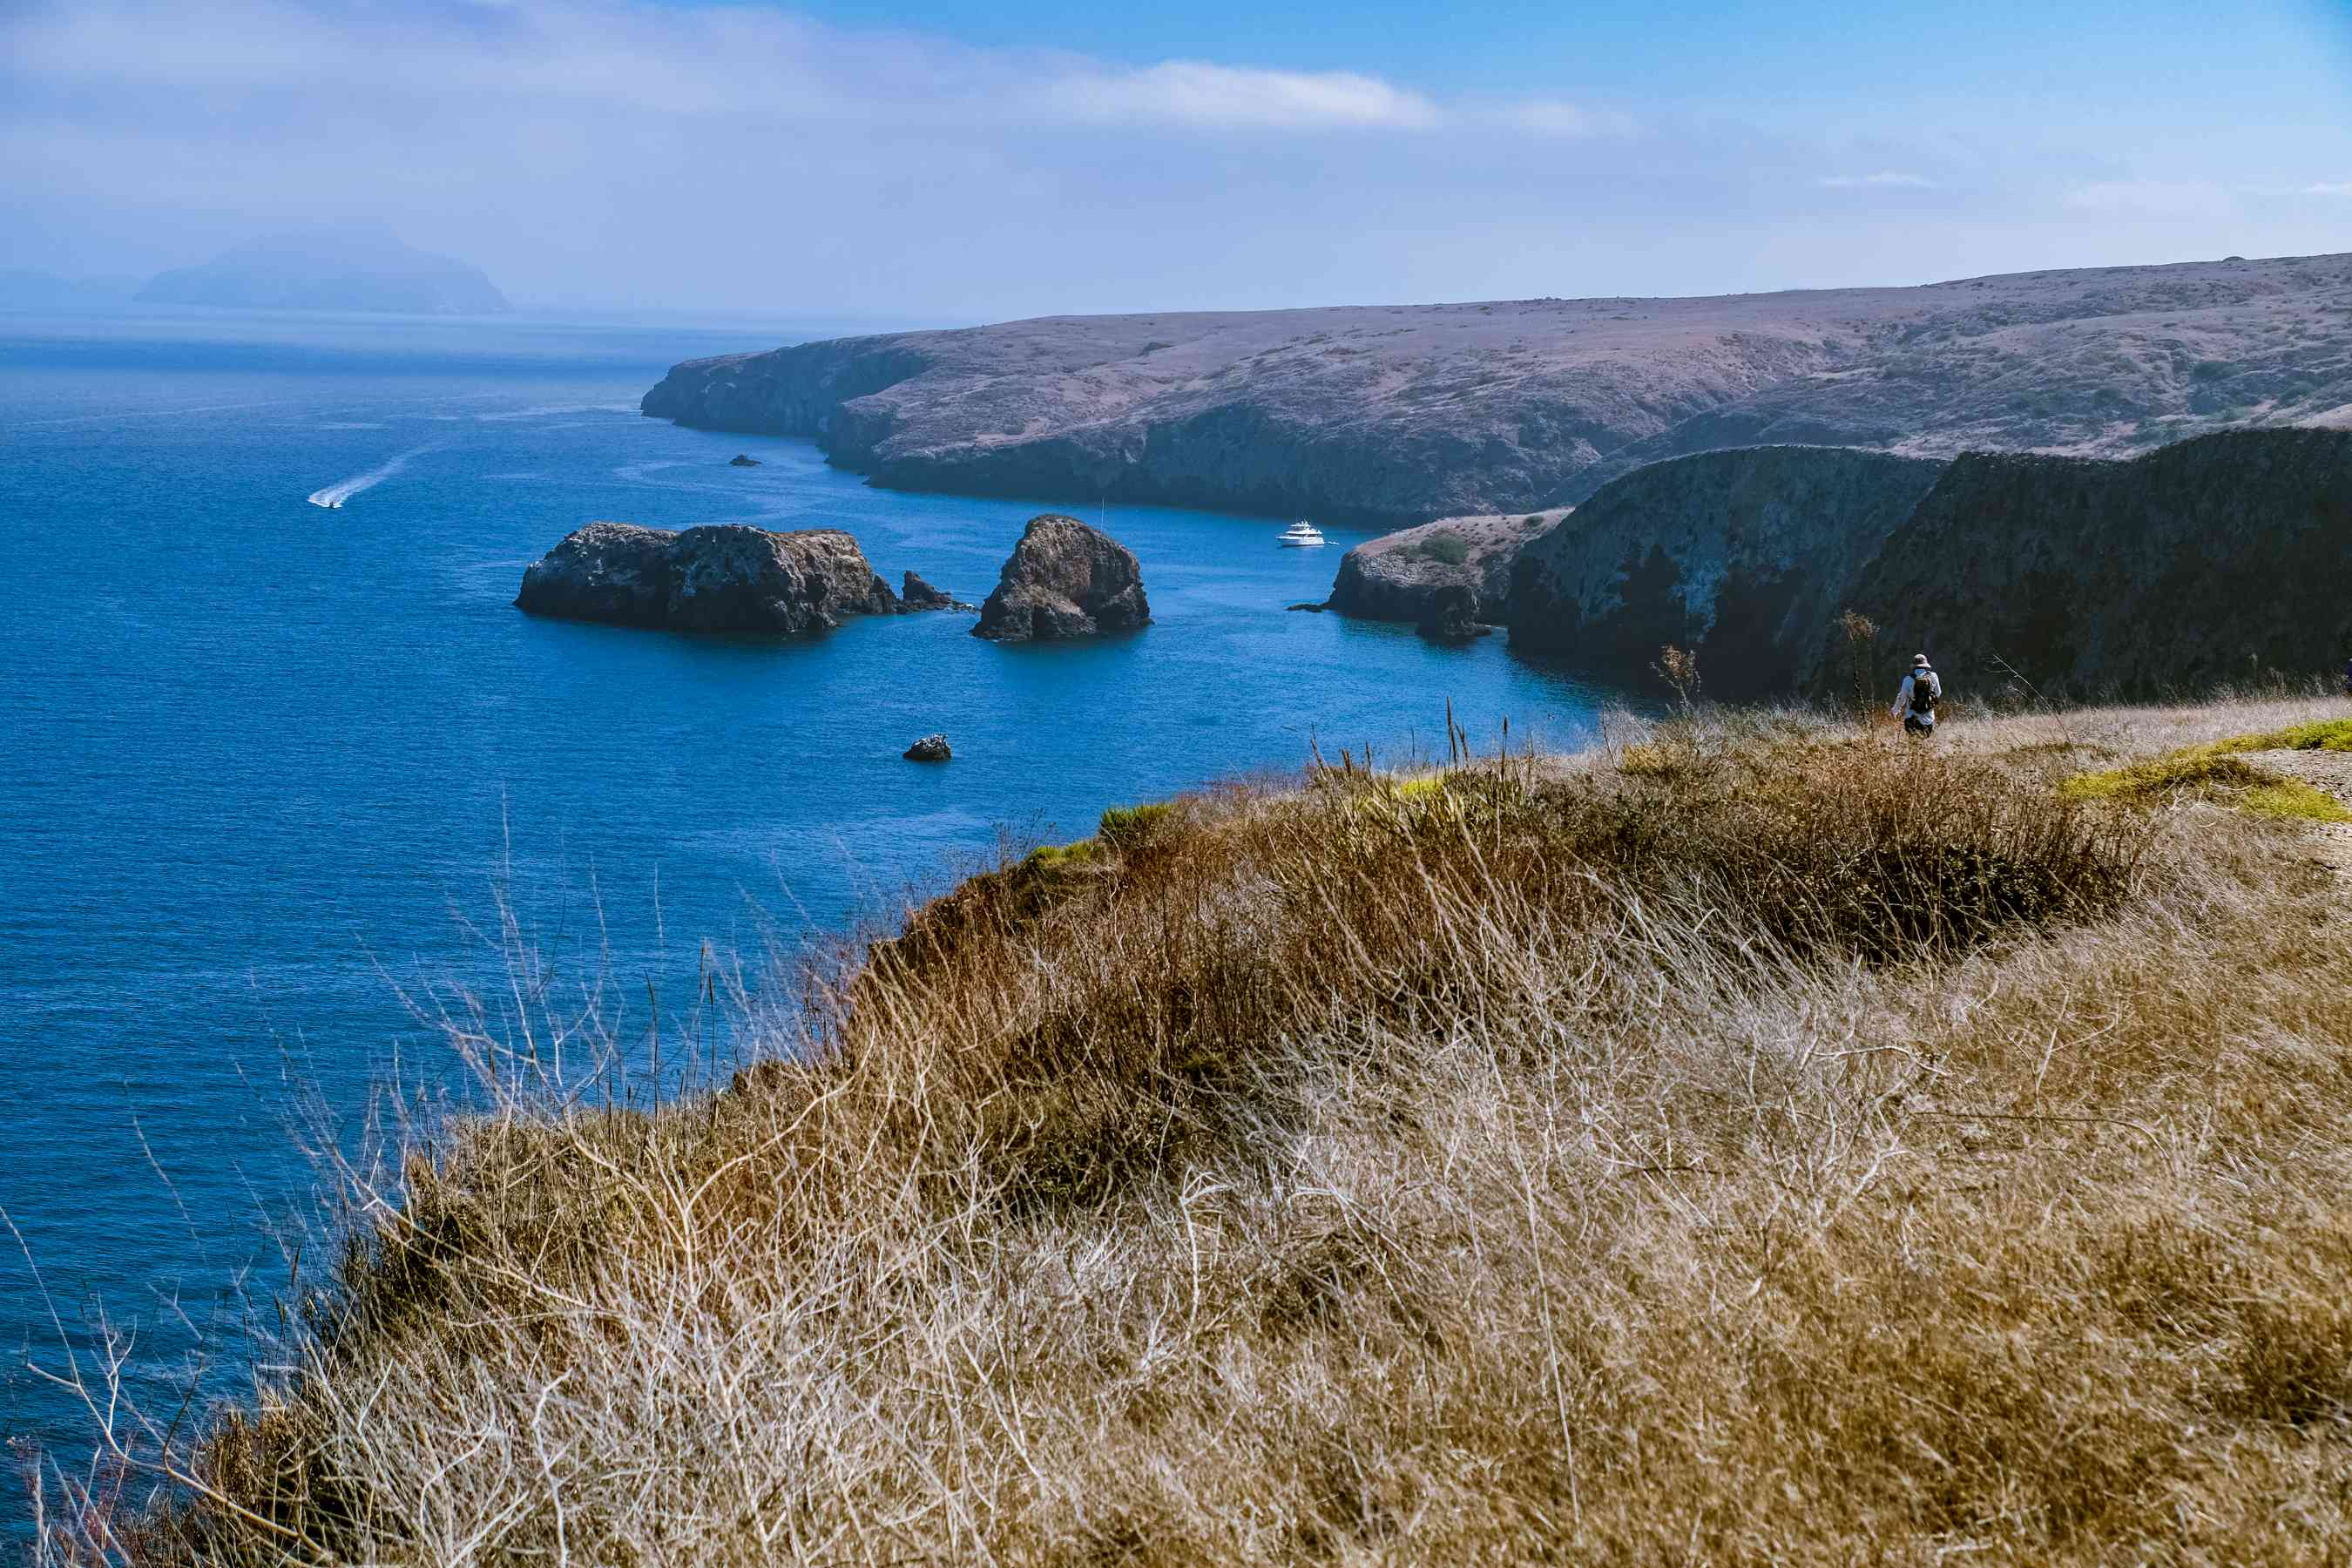 Coastline of the Channel Islands National Park